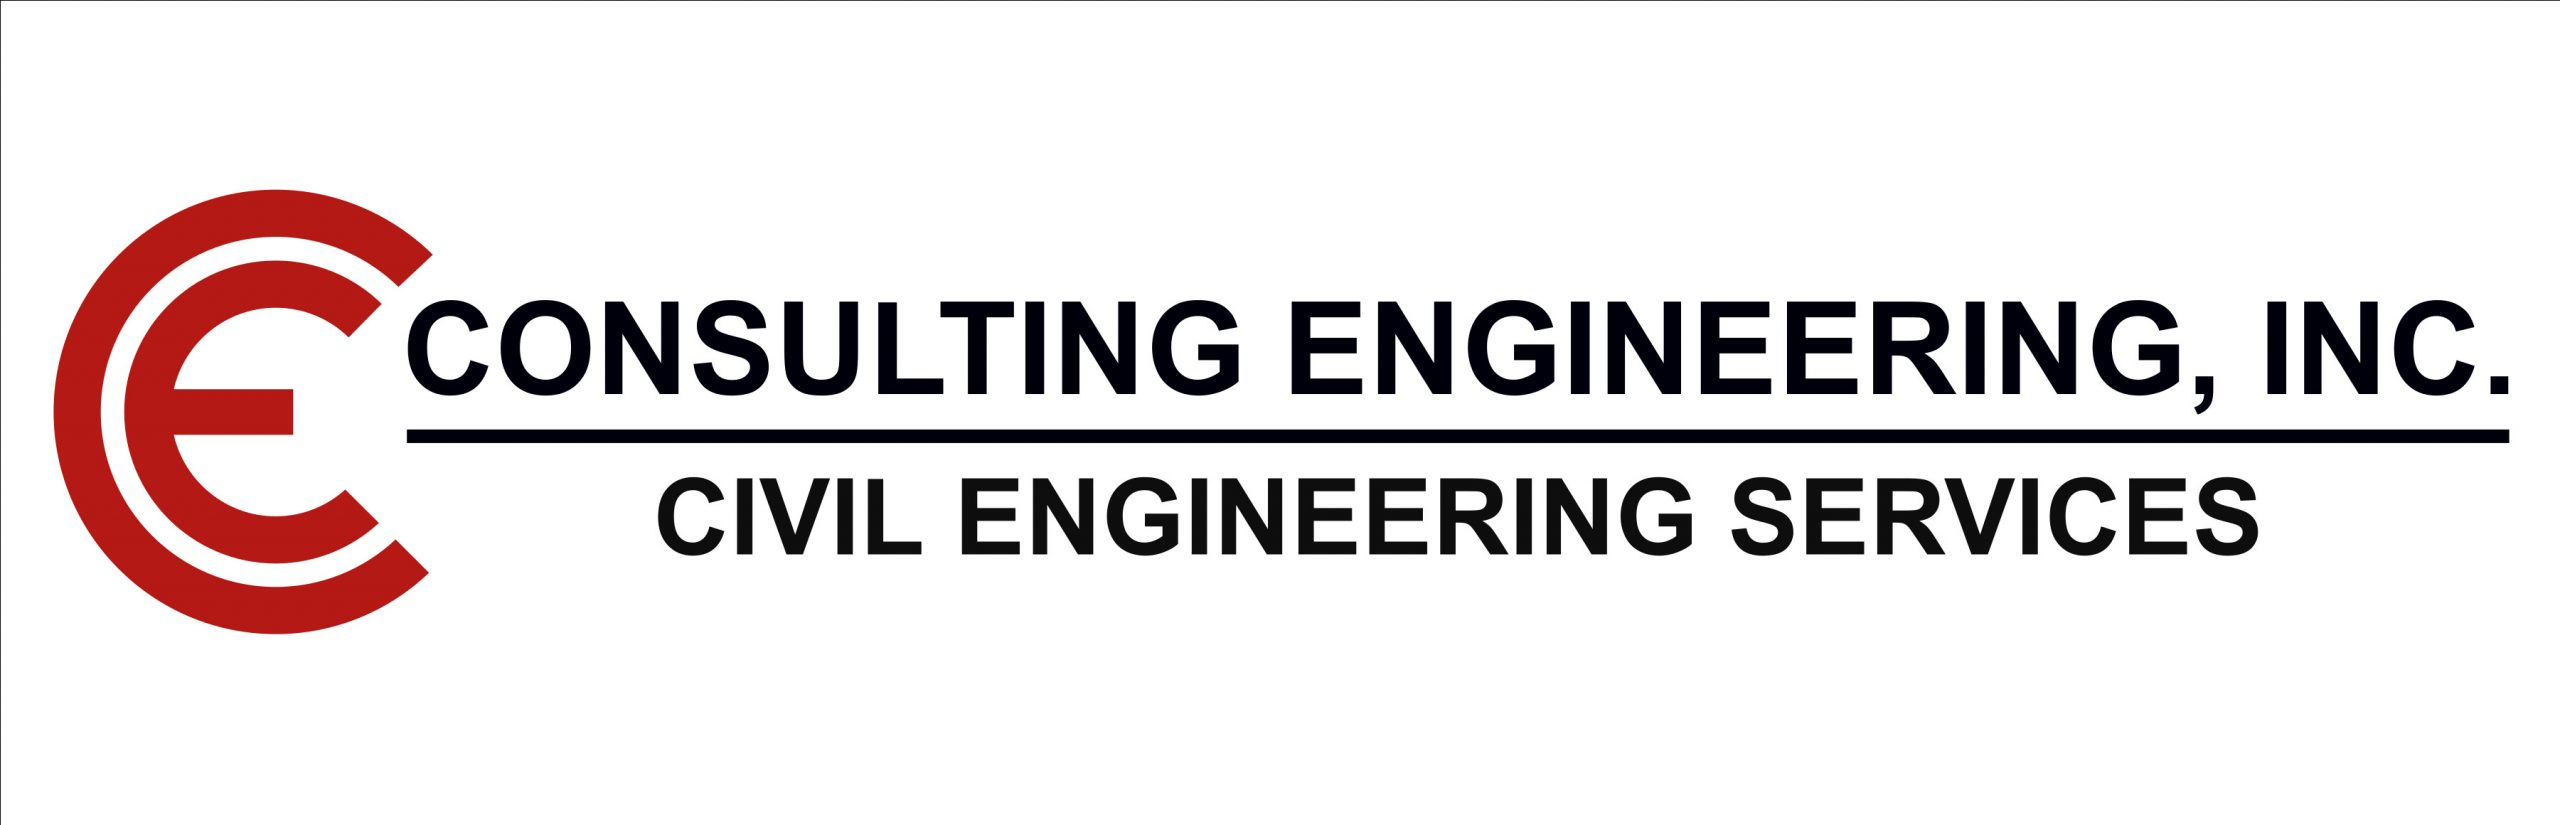 Consulting Engineering Inc.